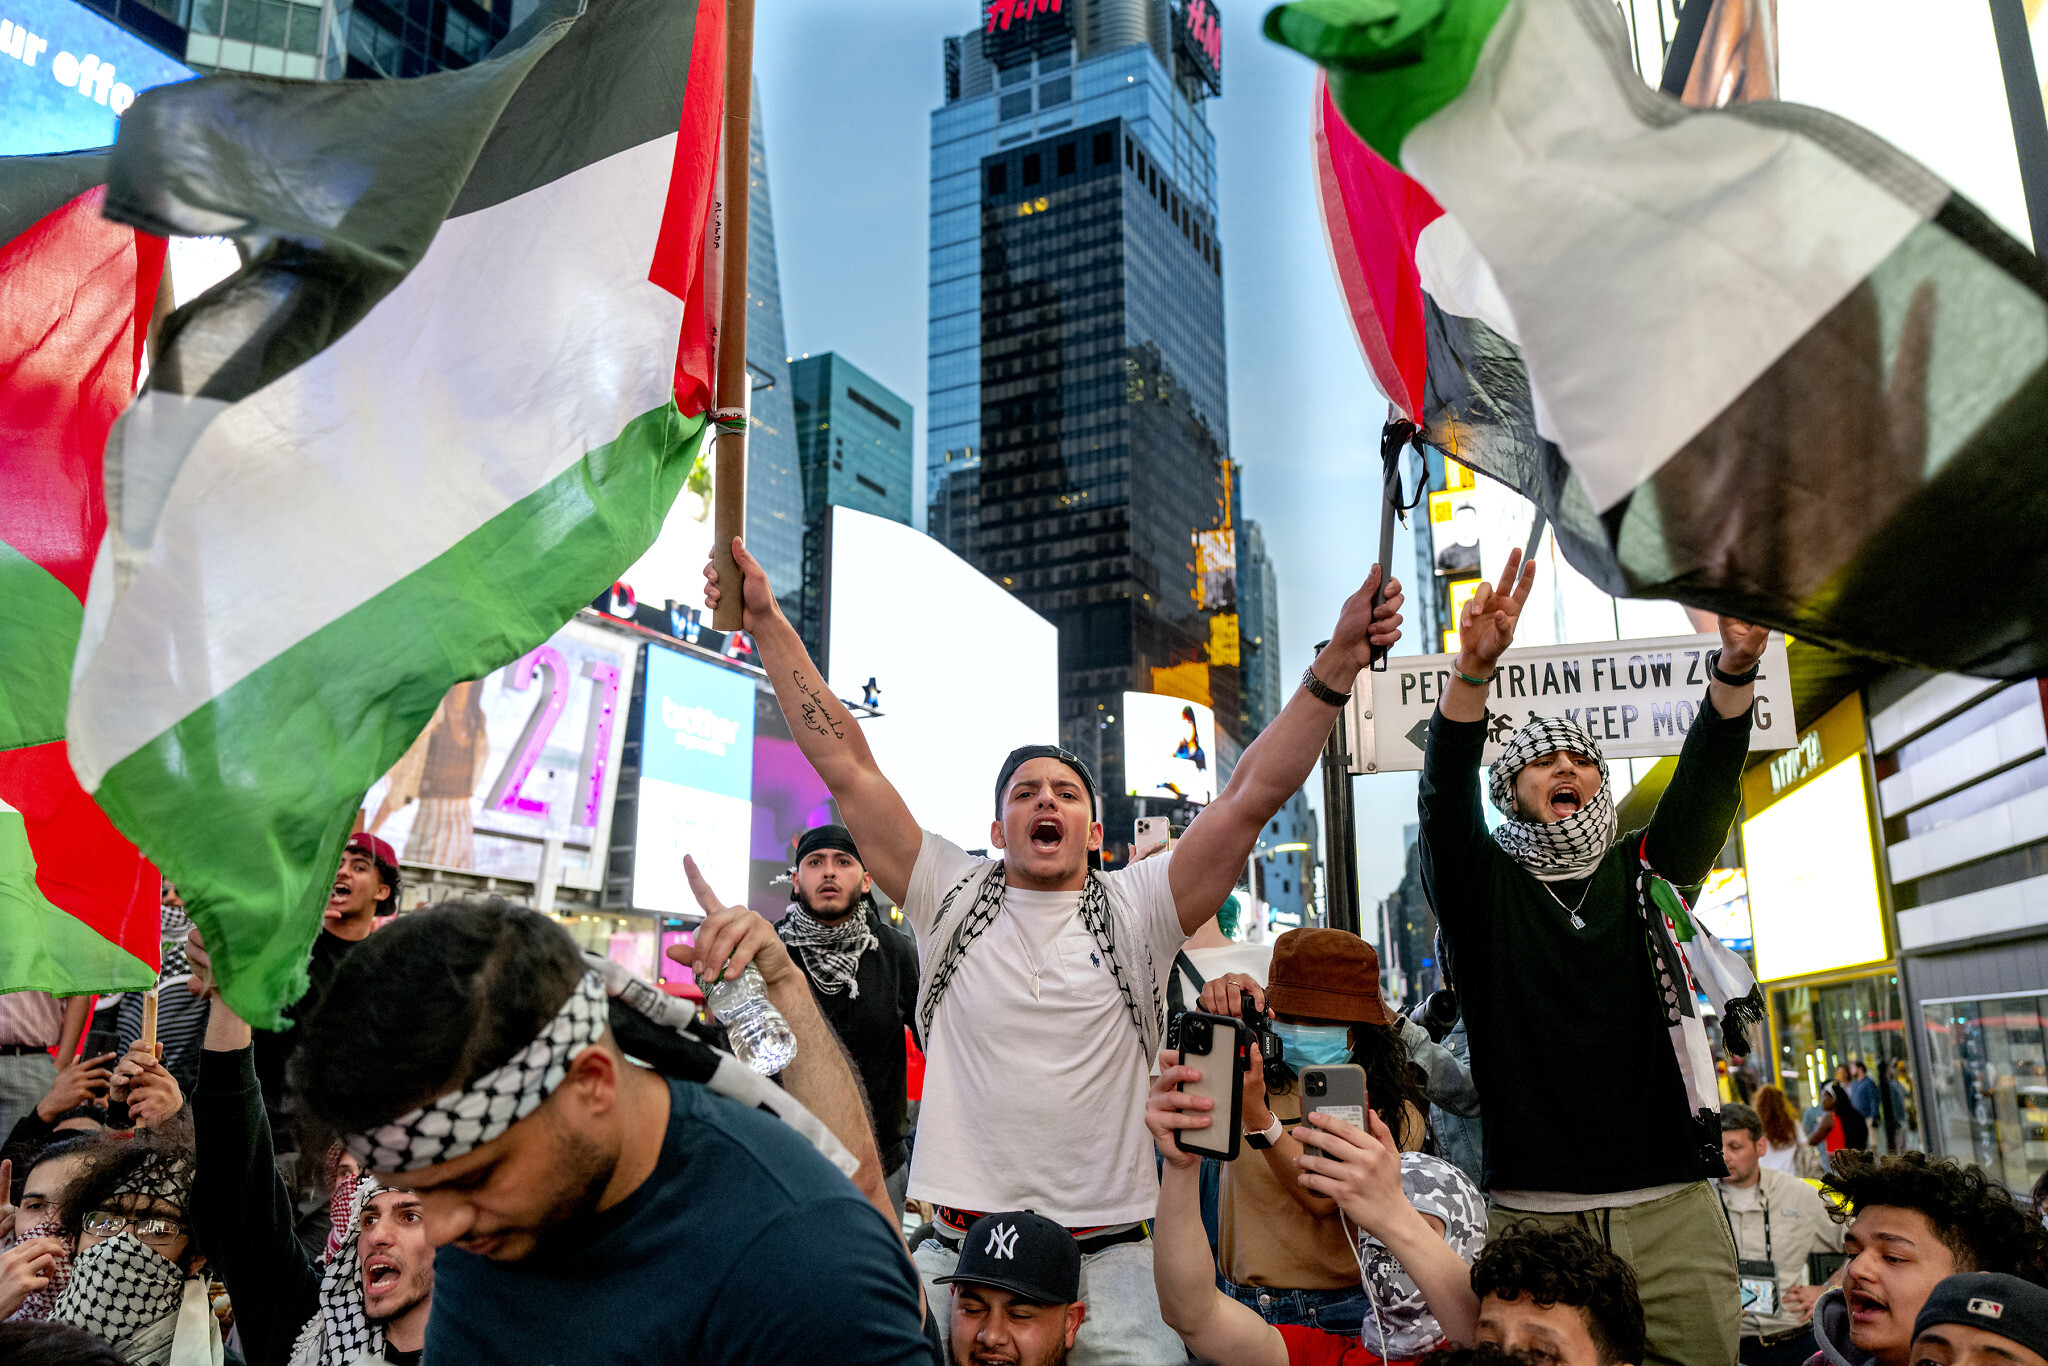 Jewish Man Attacked By Pro-Palestine Protesters In Midtown